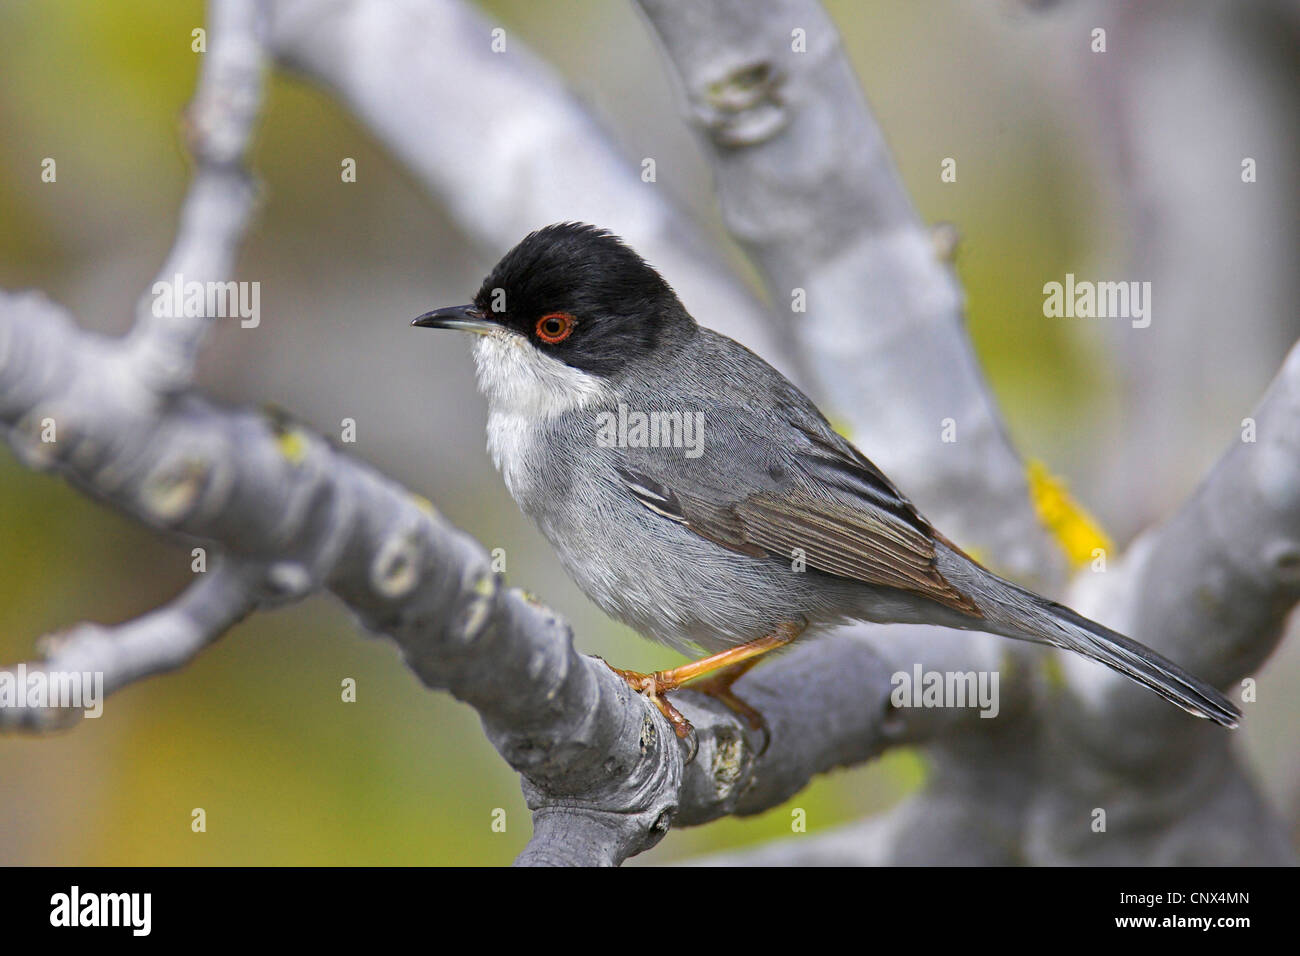 sardinian warbler (Sylvia melanocephala), male sitting on a branch, Canary Islands, Fuerteventura - Stock Image